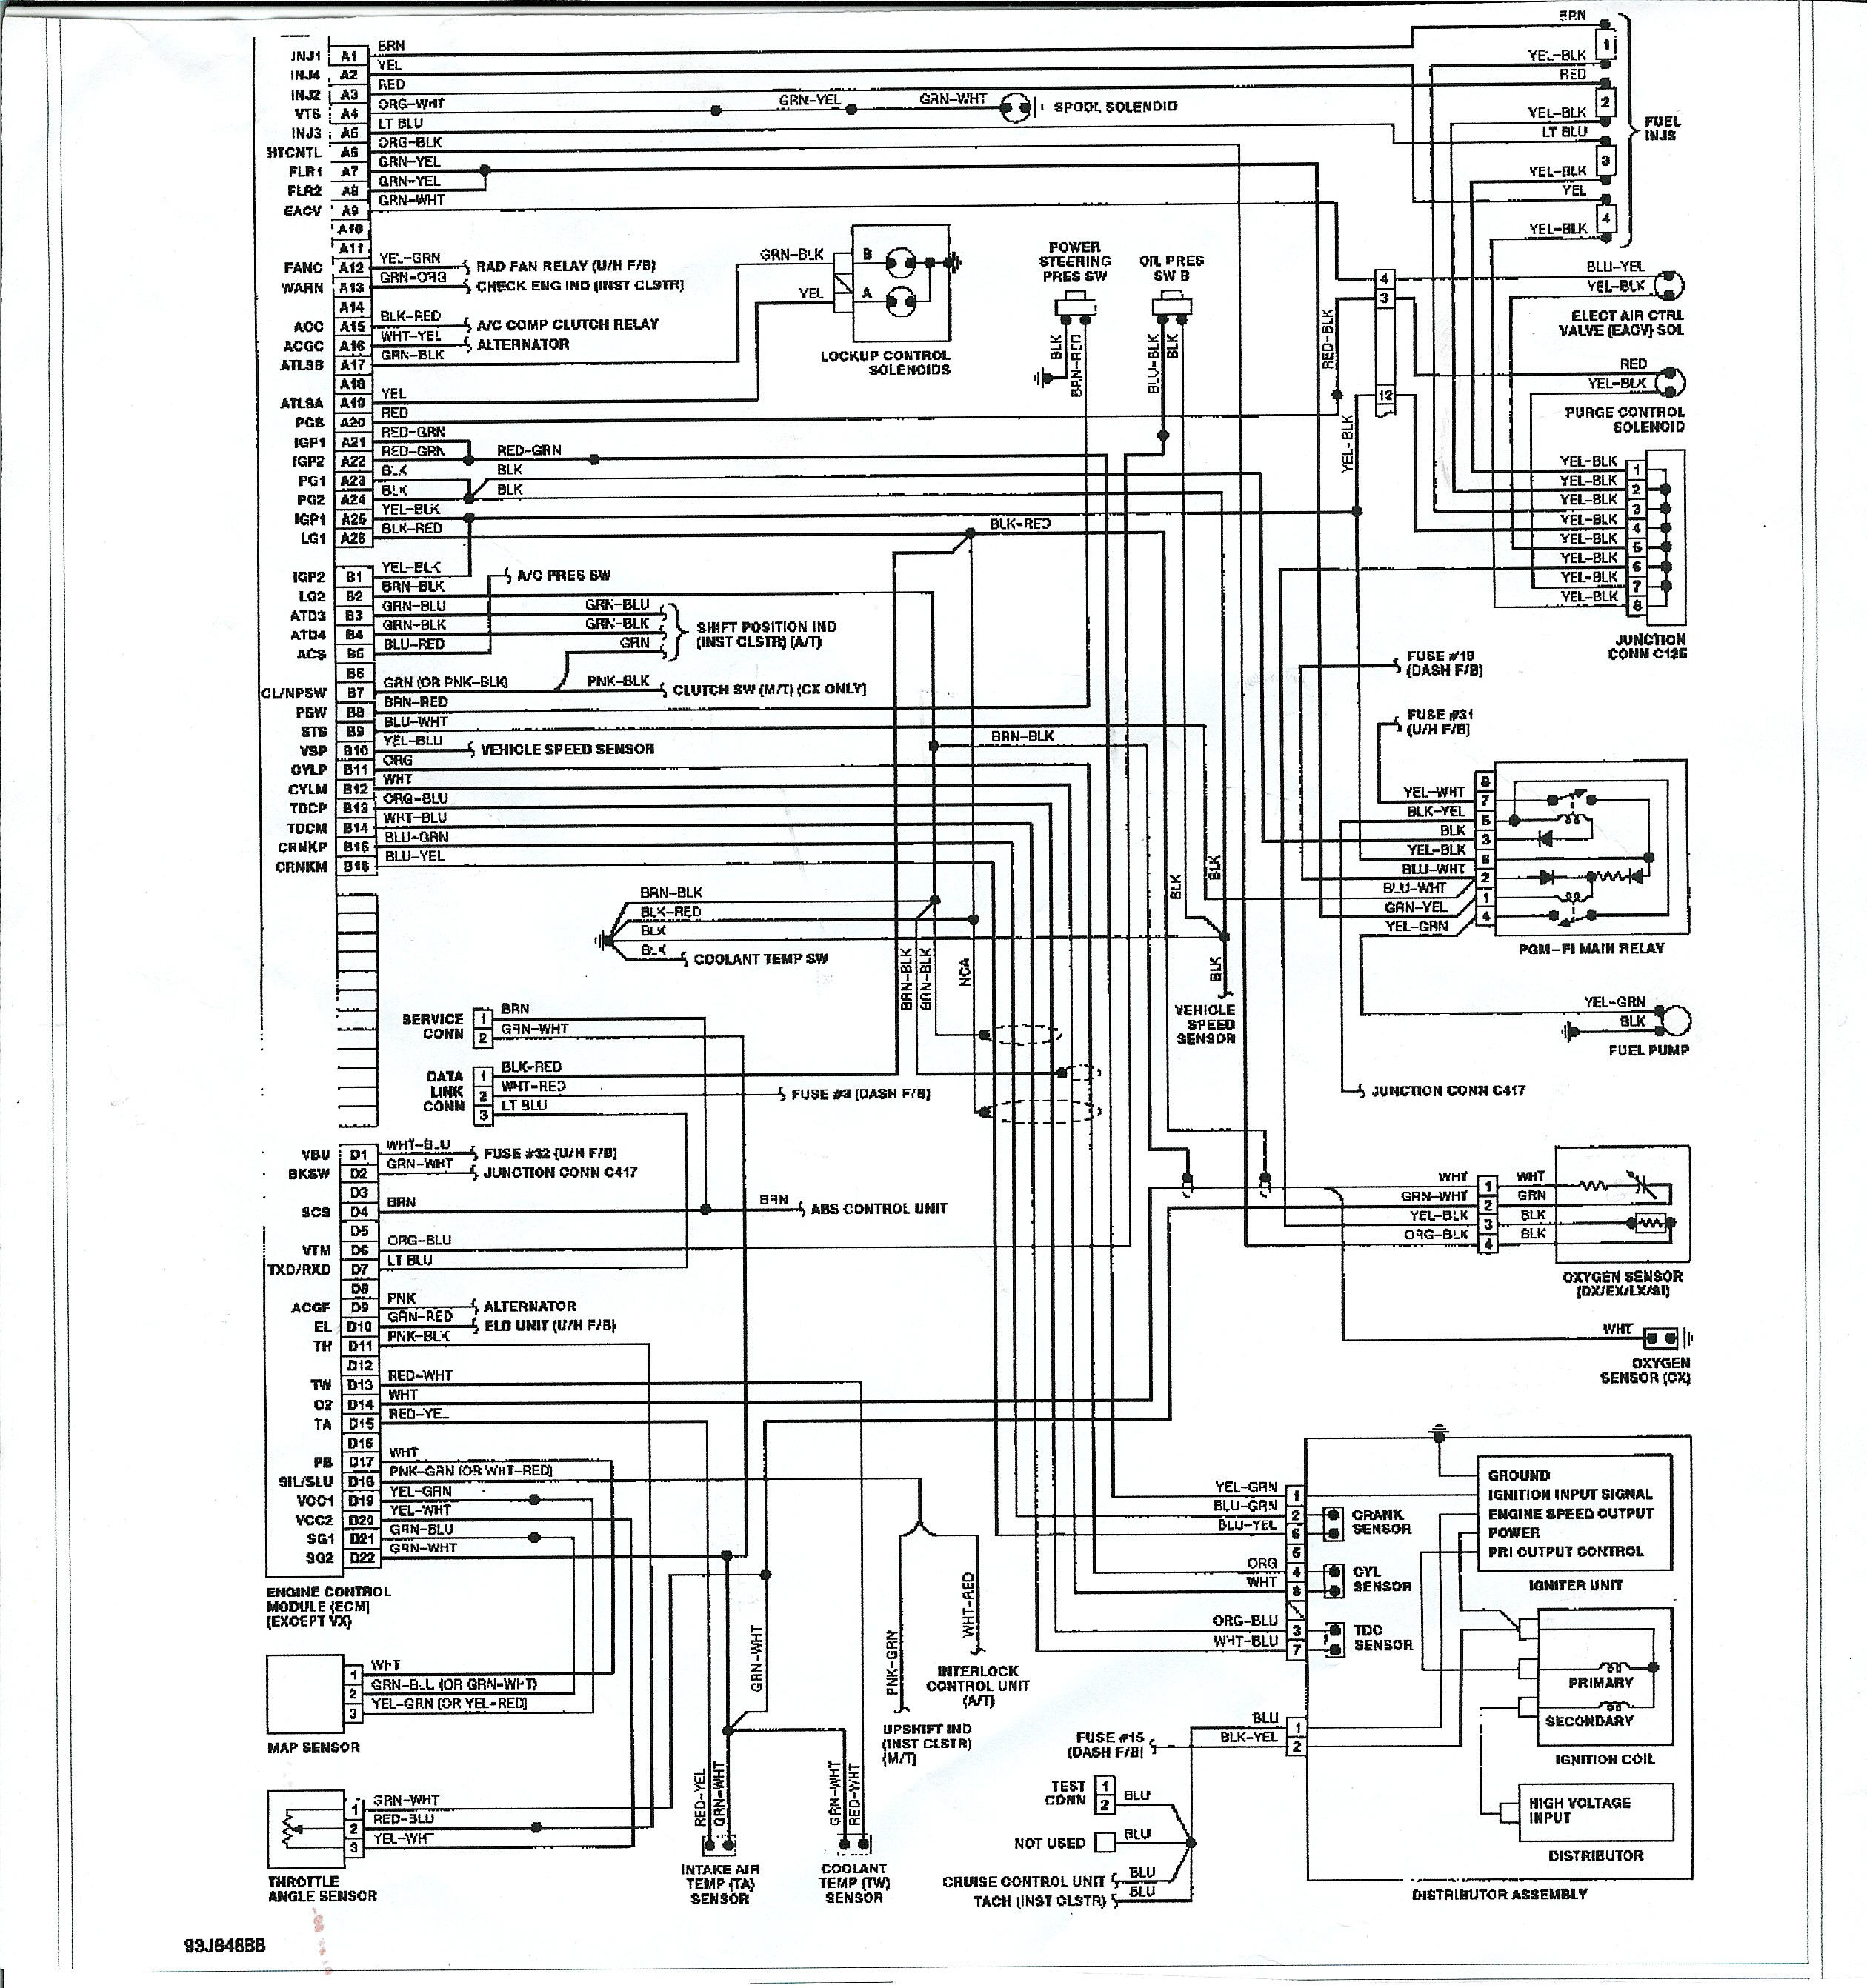 Honda Civic Wiring Diagram from detoxicrecenze.com